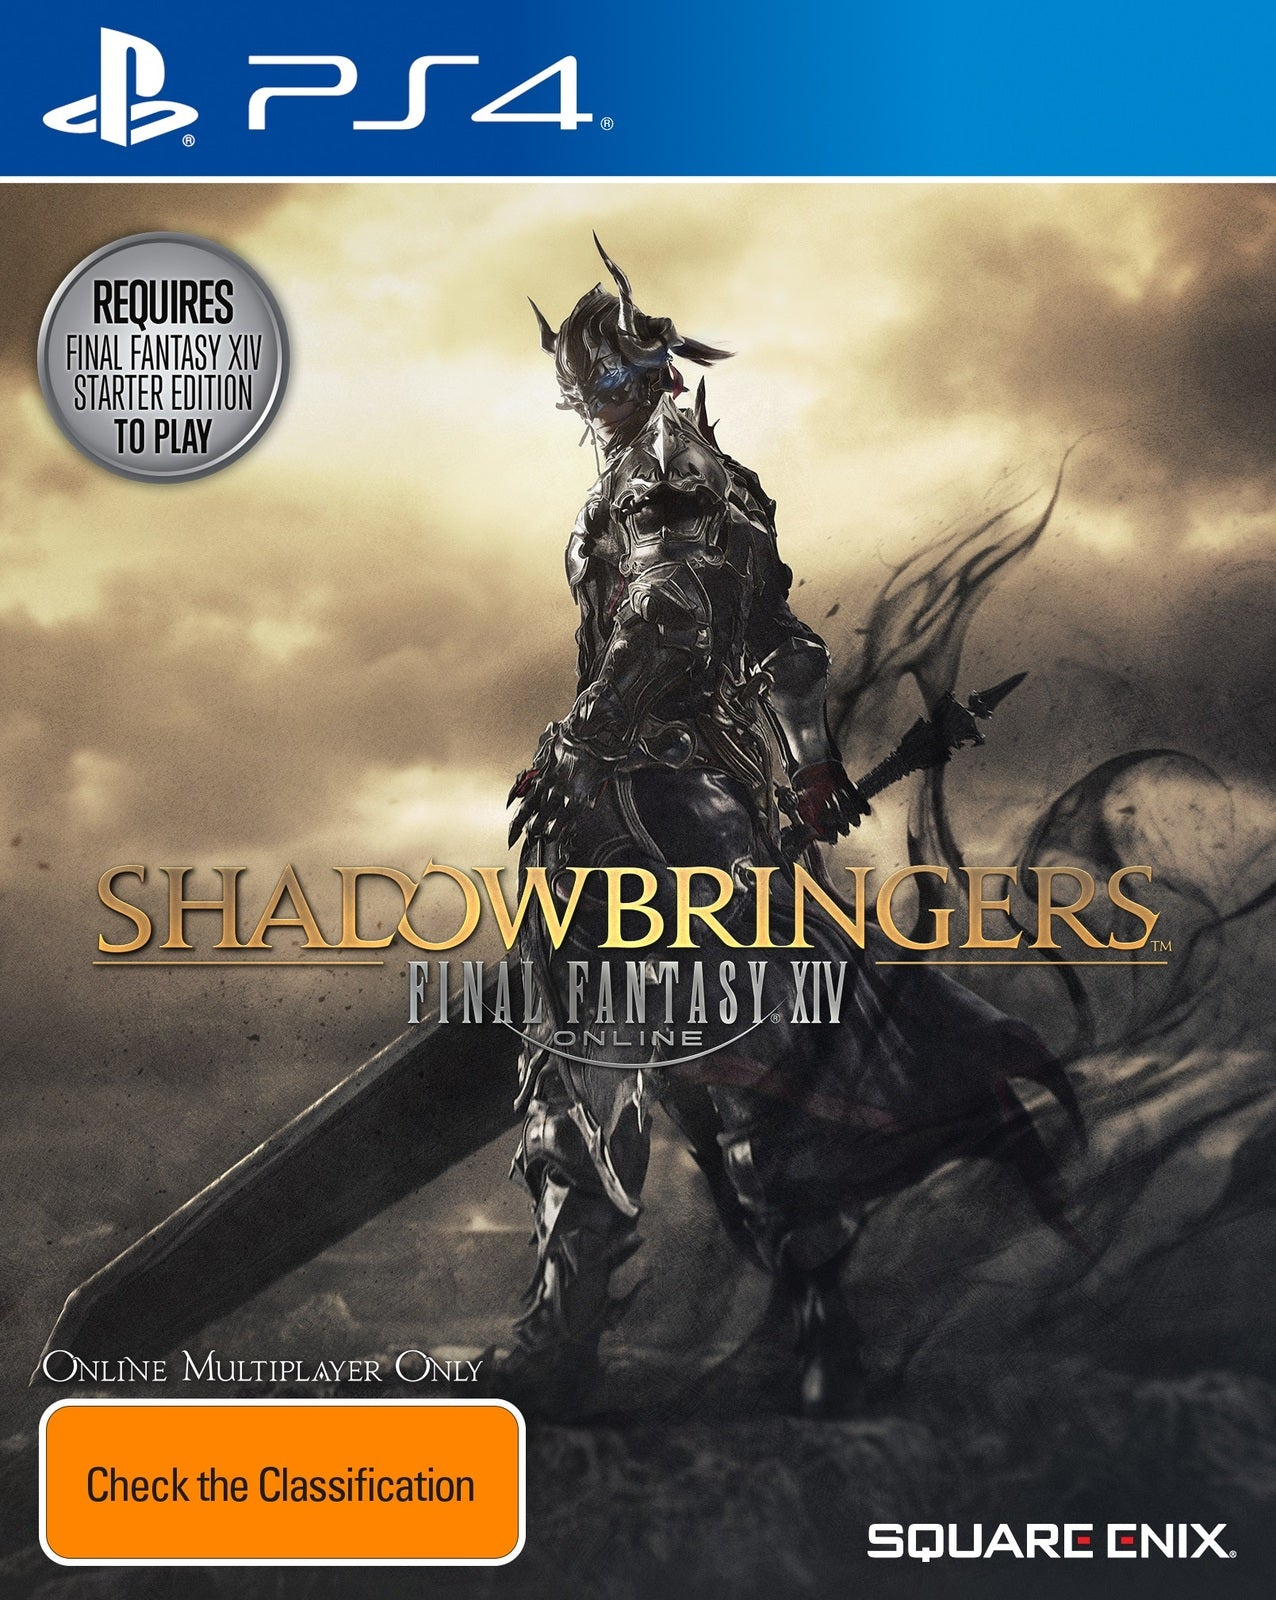 Final Fantasy XIV: Shadowbringers - PS4